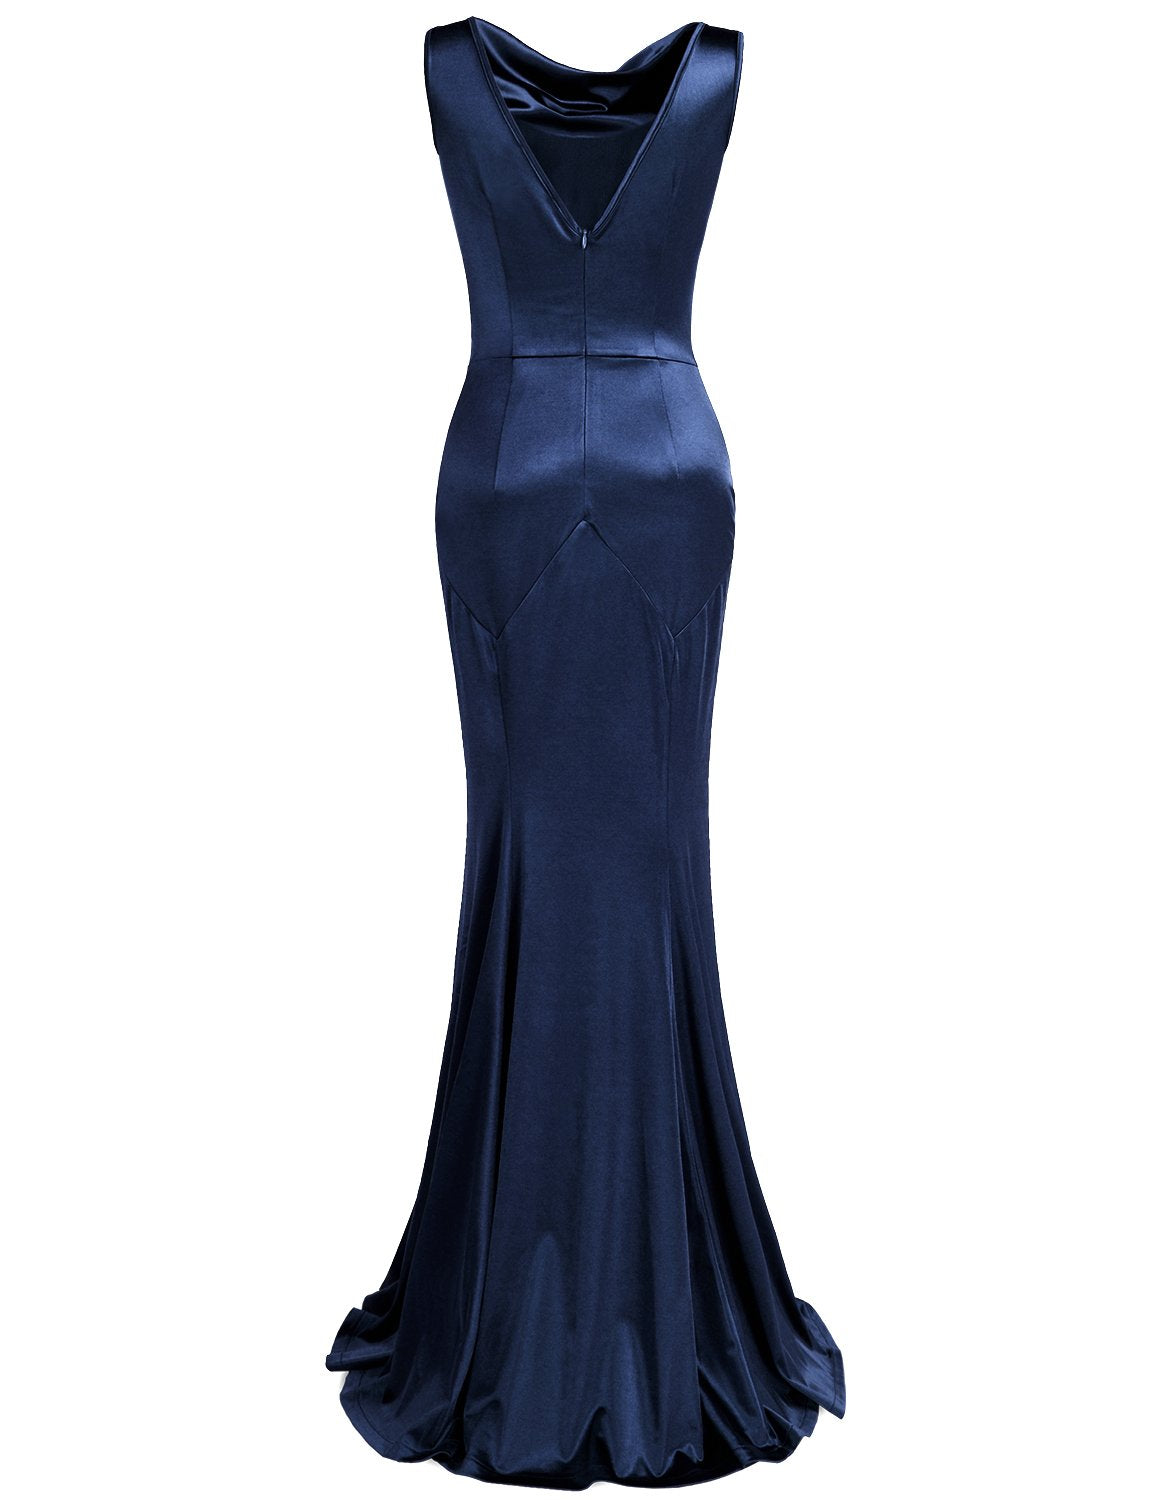 Masquerade Dress 1950s Retro Cowl Neck Bandage Masked Ball Gown Prom Dress